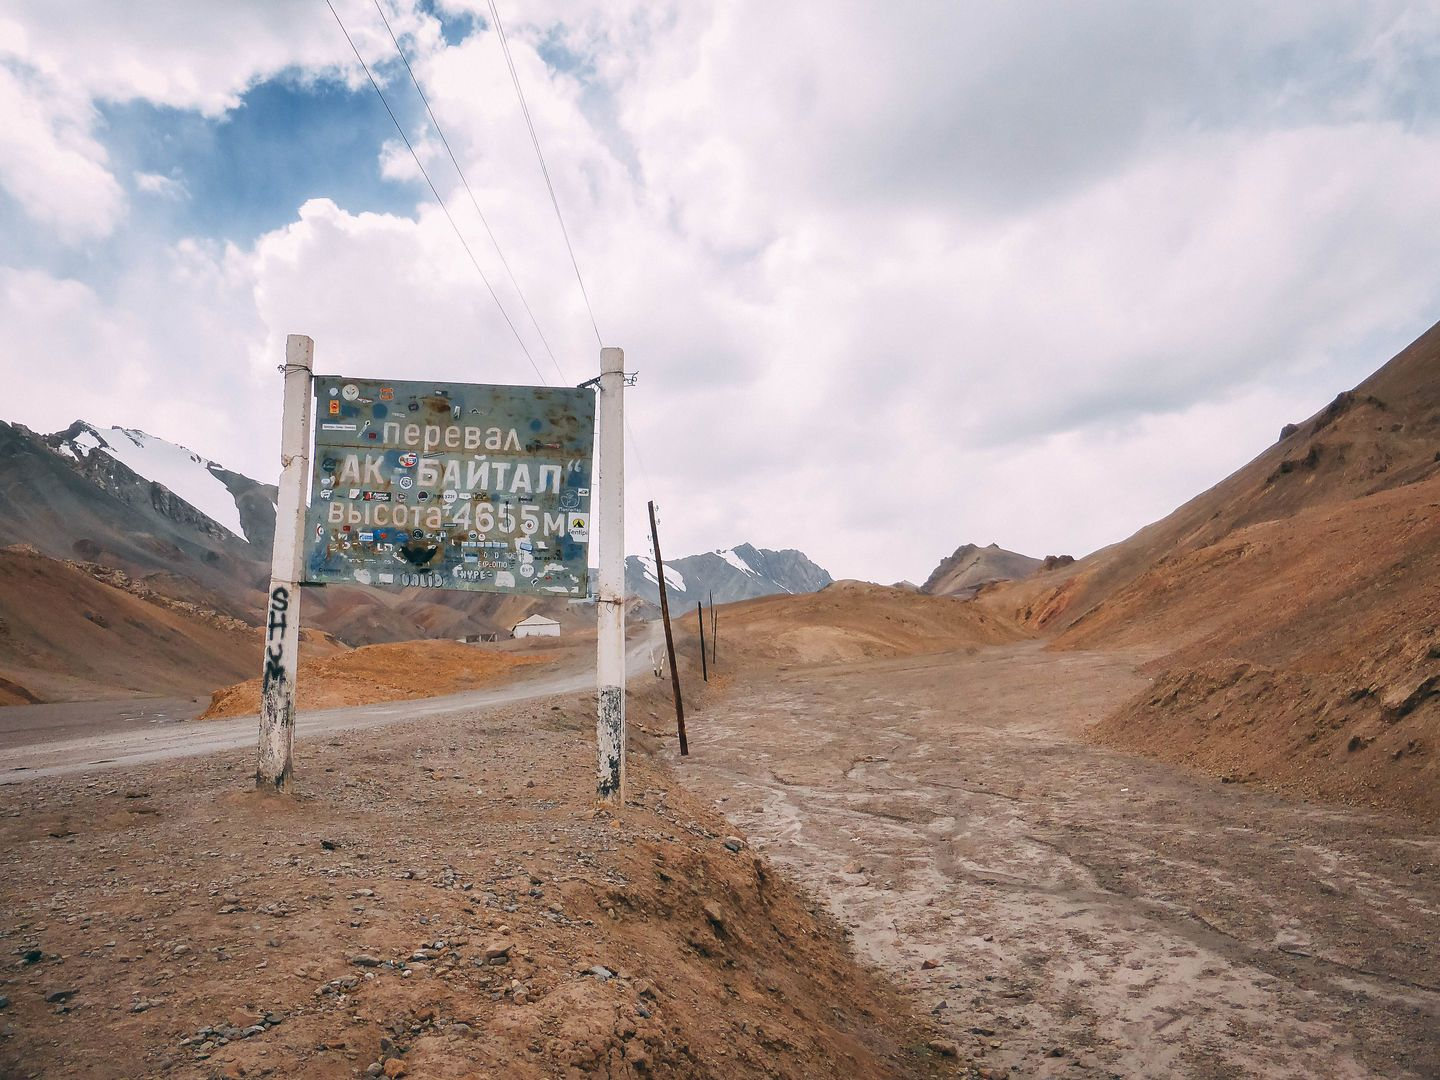 at Ak Baital pass or the highest point of Pamir Highway with 4655 meters